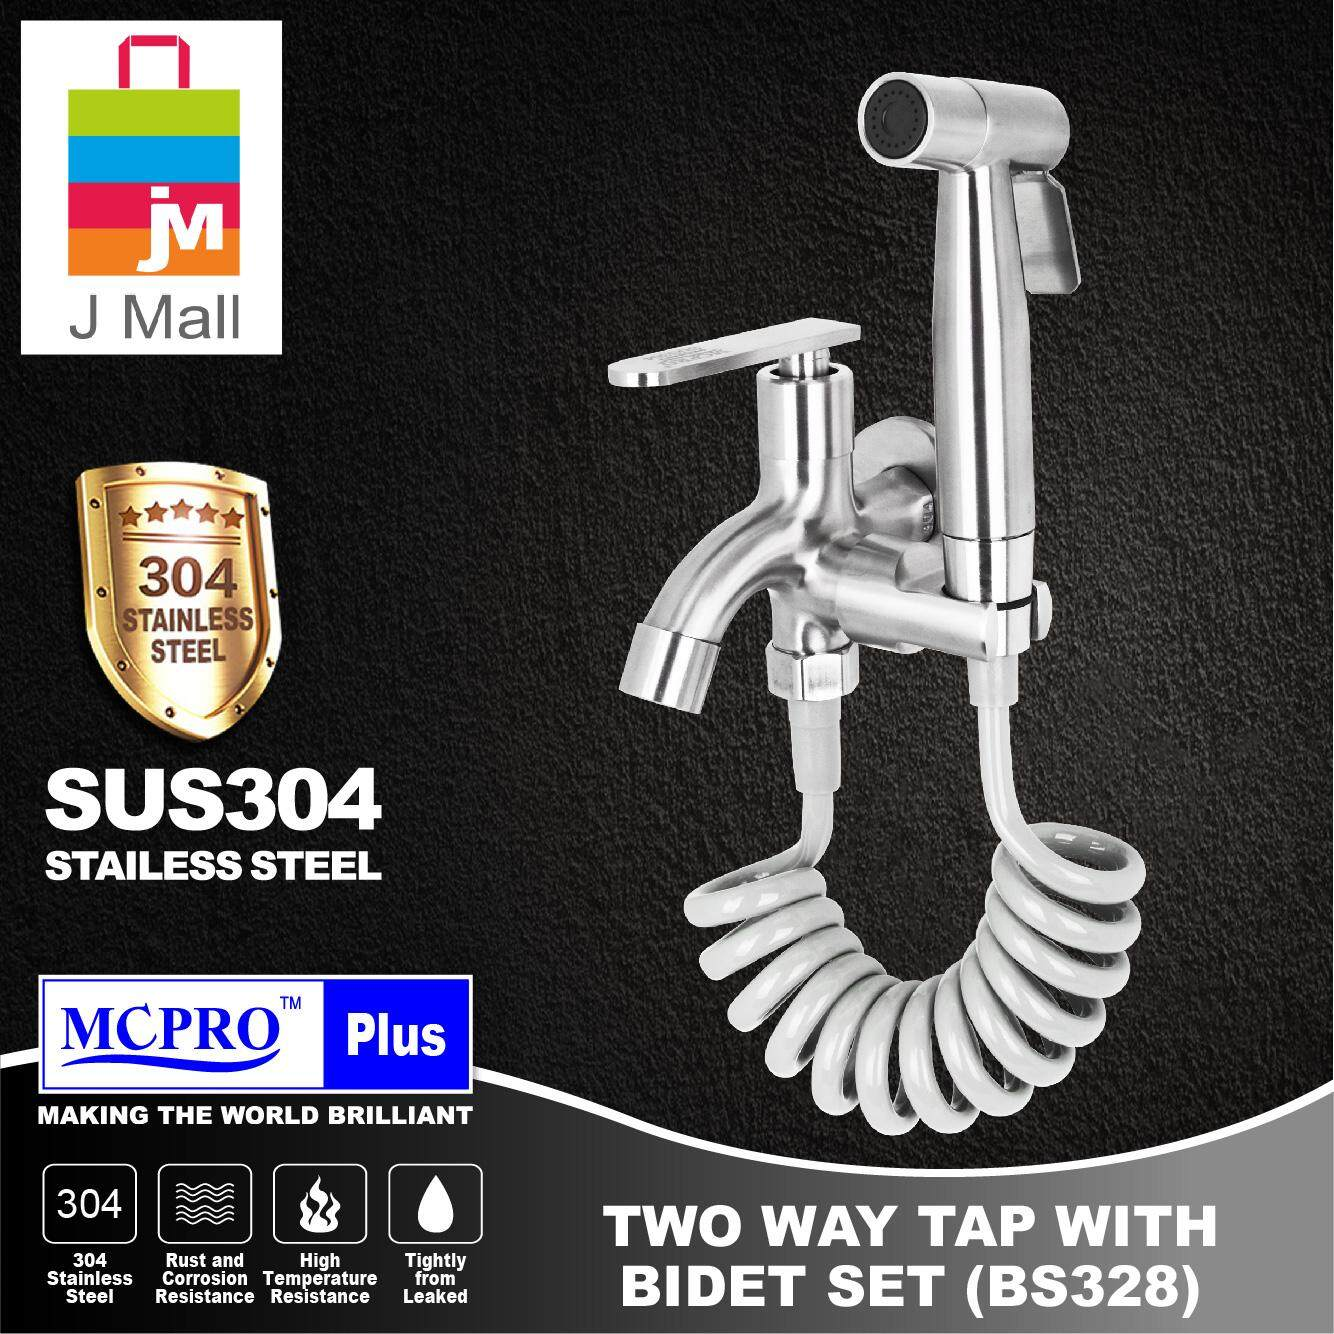 MCPRO Stainless Steel SUS304 Bathroom Faucet TWO WAY TAP bidet spray holder WITH BIDET AND FLEXIBLE HOSE SET SS602 (BS328)